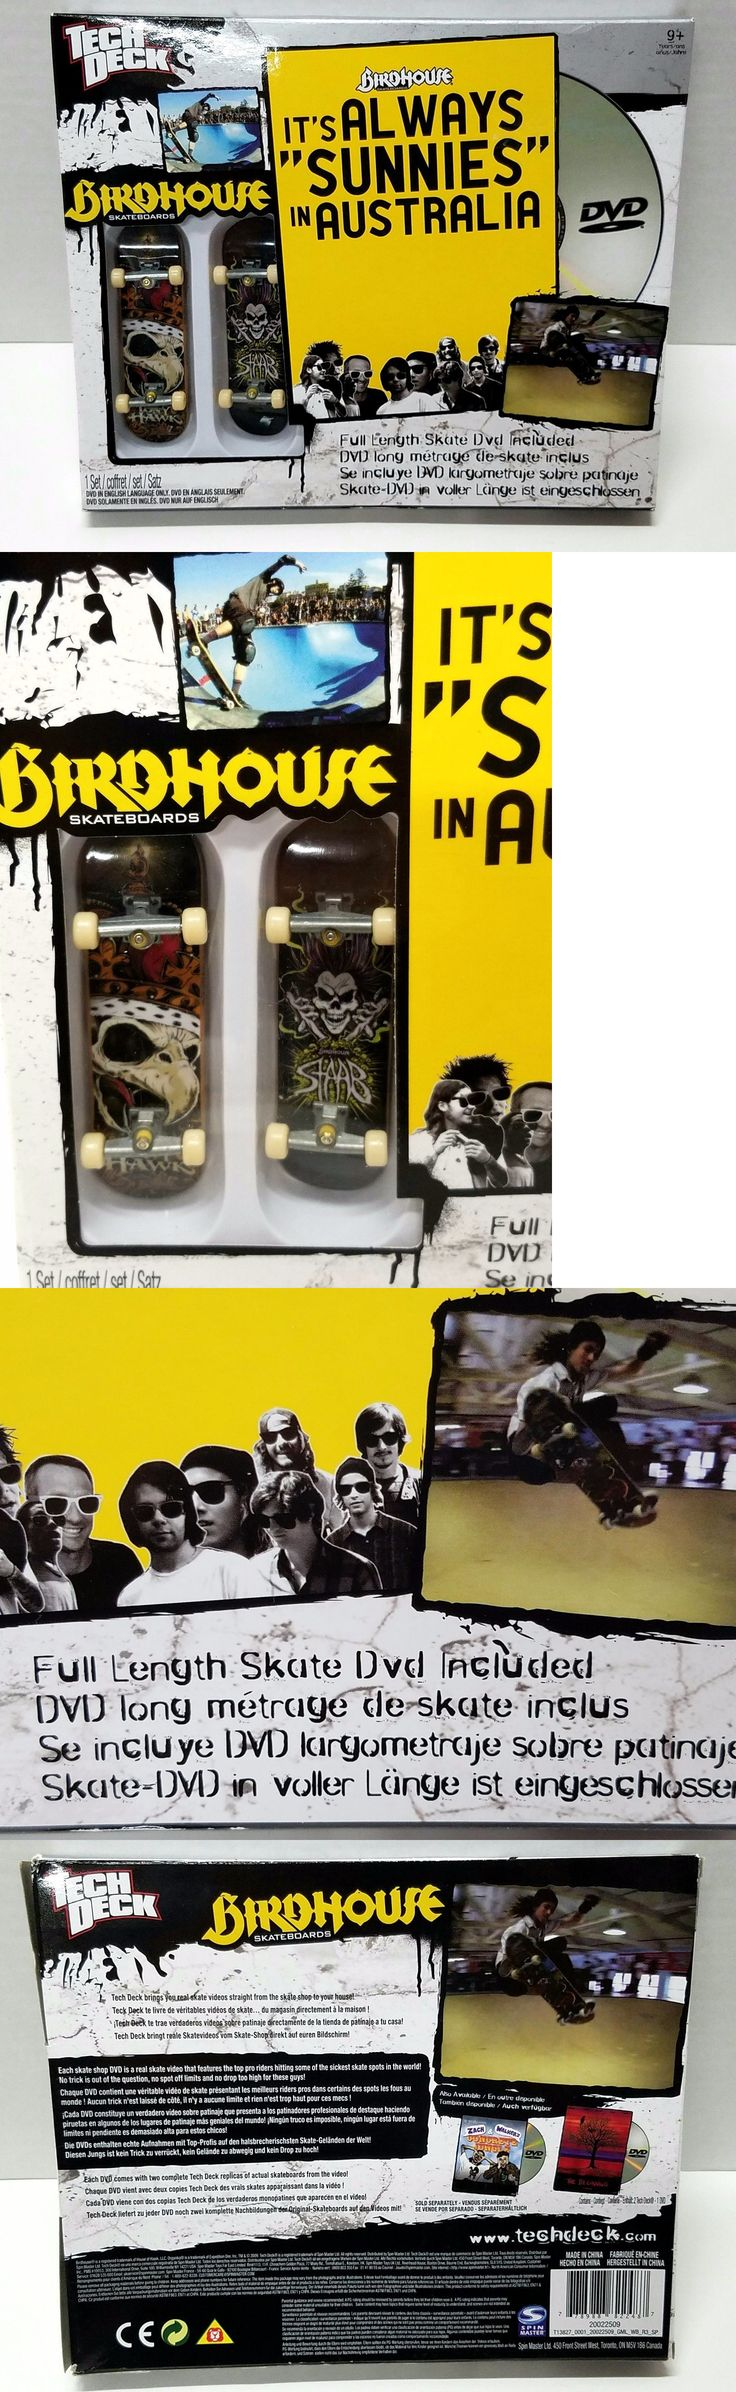 Books and Video 58128: Tech Deck It S Always Sunnies In Australia Birdhouse Skateboards + Dvd Movie New -> BUY IT NOW ONLY: $31.95 on eBay!